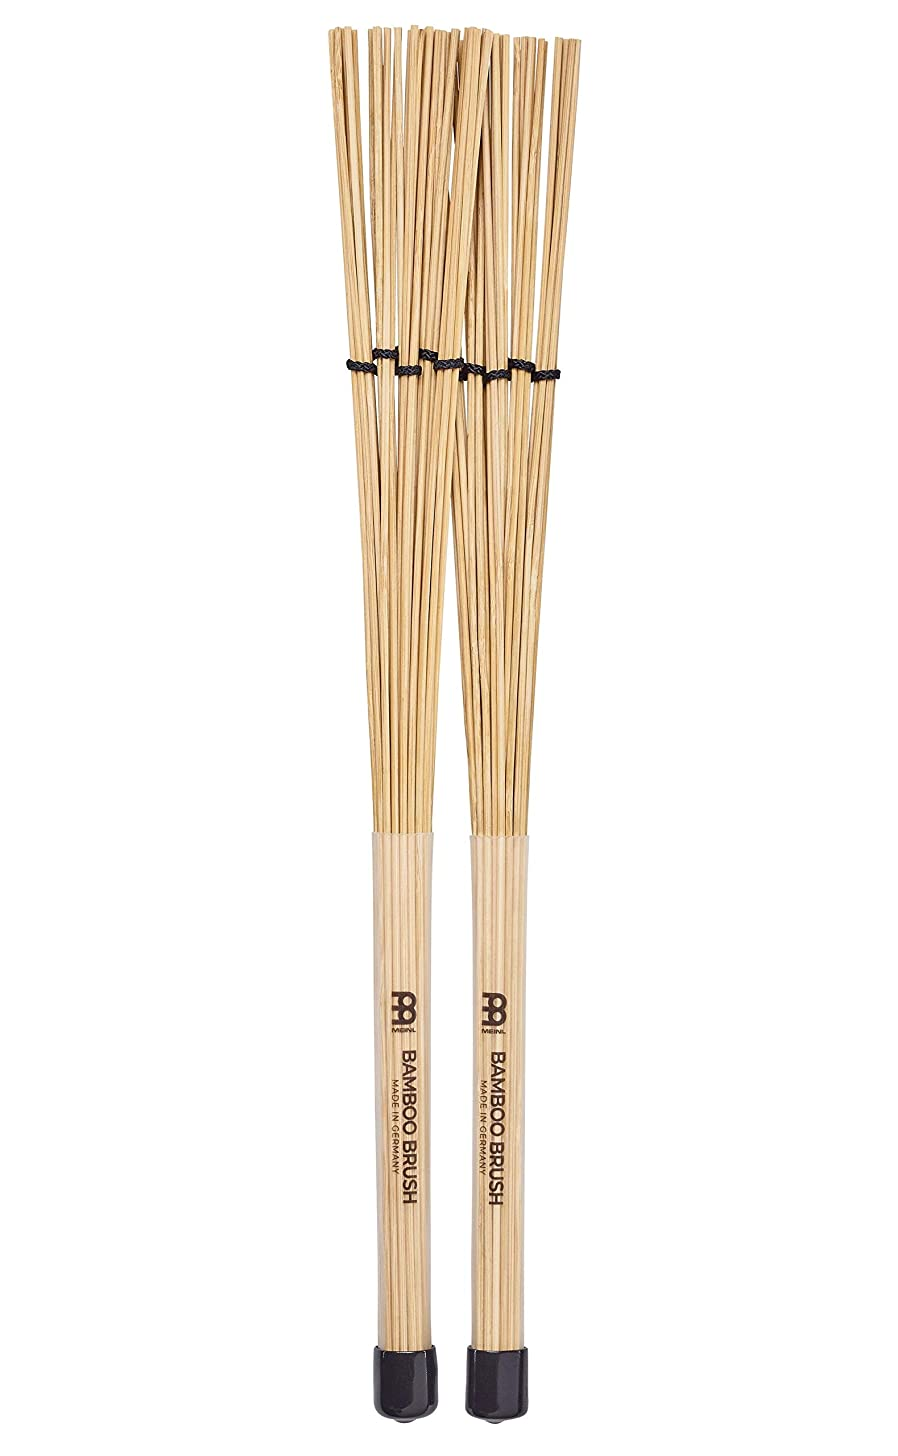 Meinl Stick & Brush Bamboo Brush with Fanned Dowels and Adjustable Rings, Standard Size - MADE IN GERMANY (SB205)